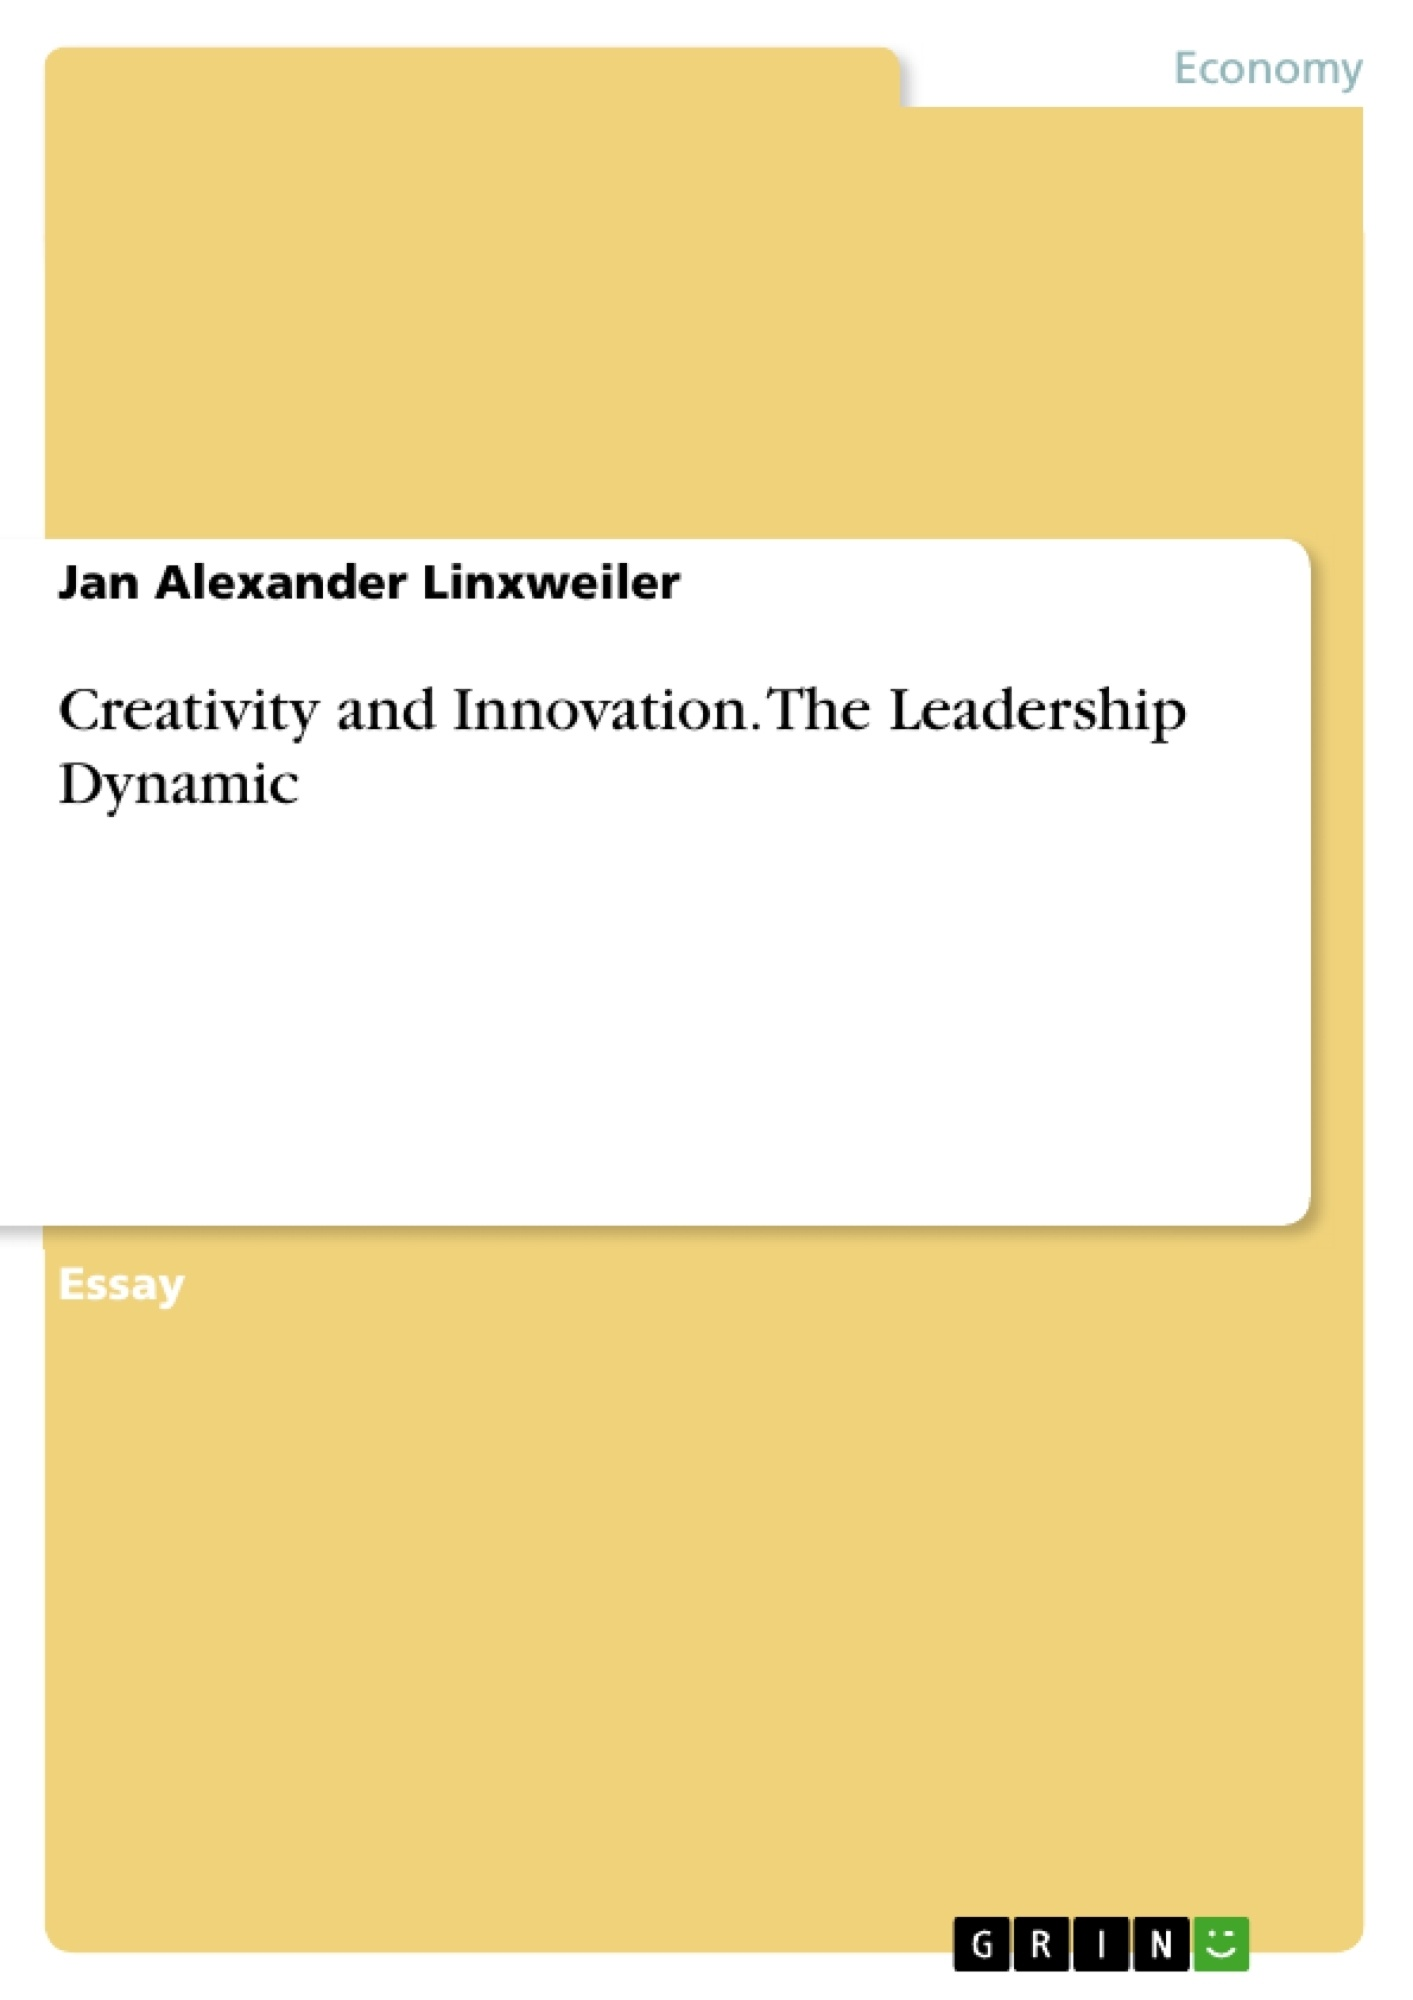 Title: Creativity and Innovation. The Leadership Dynamic